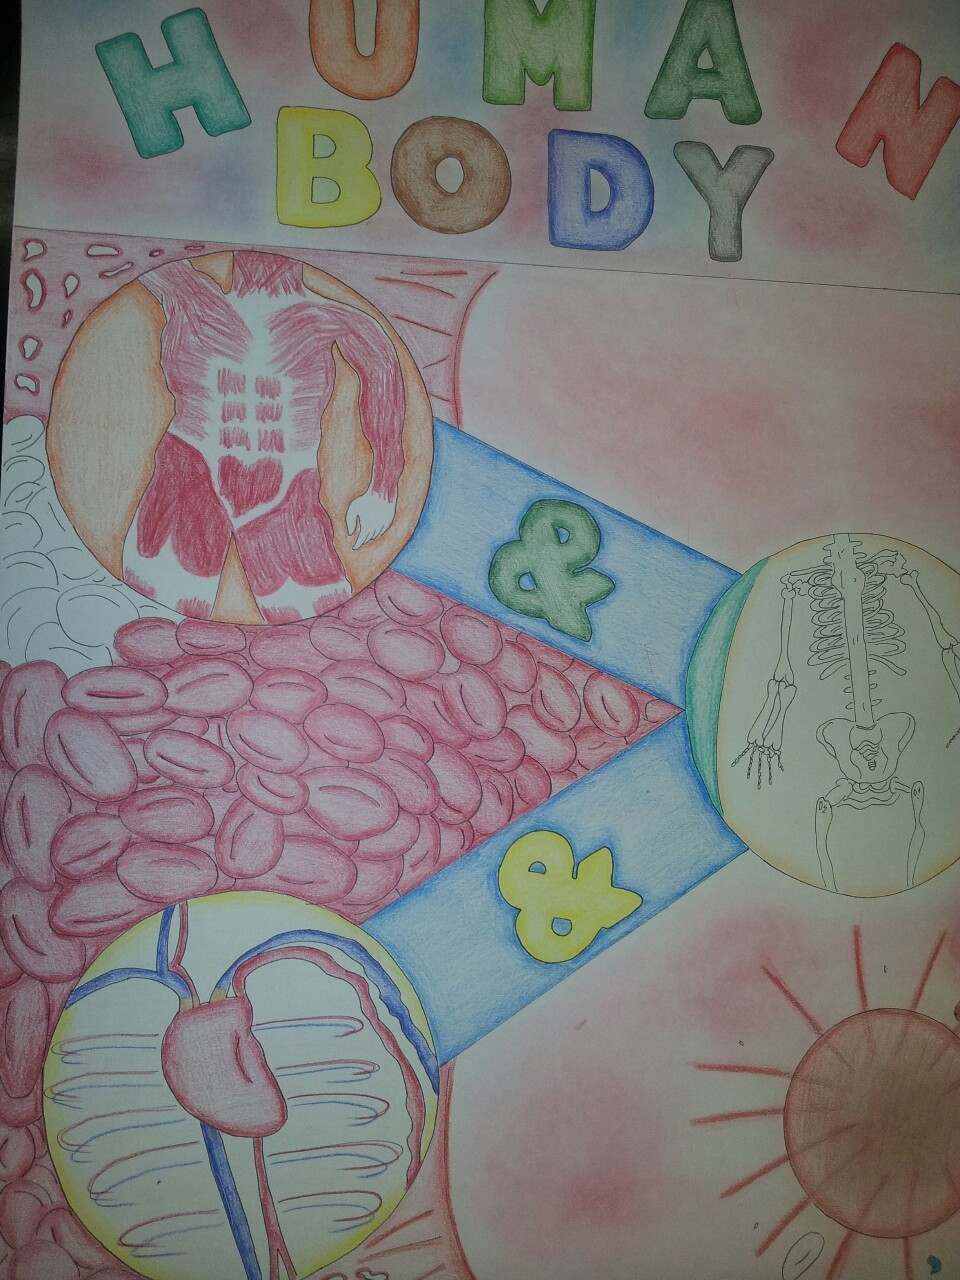 Tuesdays post: I have now finished my project. I drew the heart and chest area as well as some of the ribcage. I have bought the frame but I need to put it in over the weekend. Ms. Kirkby is getting the easel and providing the table. I have only Wednesdays and some Fridays available so it may interfere with some after school activities which is fine if it comes down to that. Hope you enjoyed my art project! It took two months but was well worth it. Only a few more tumblr posts to go! Don't go away.